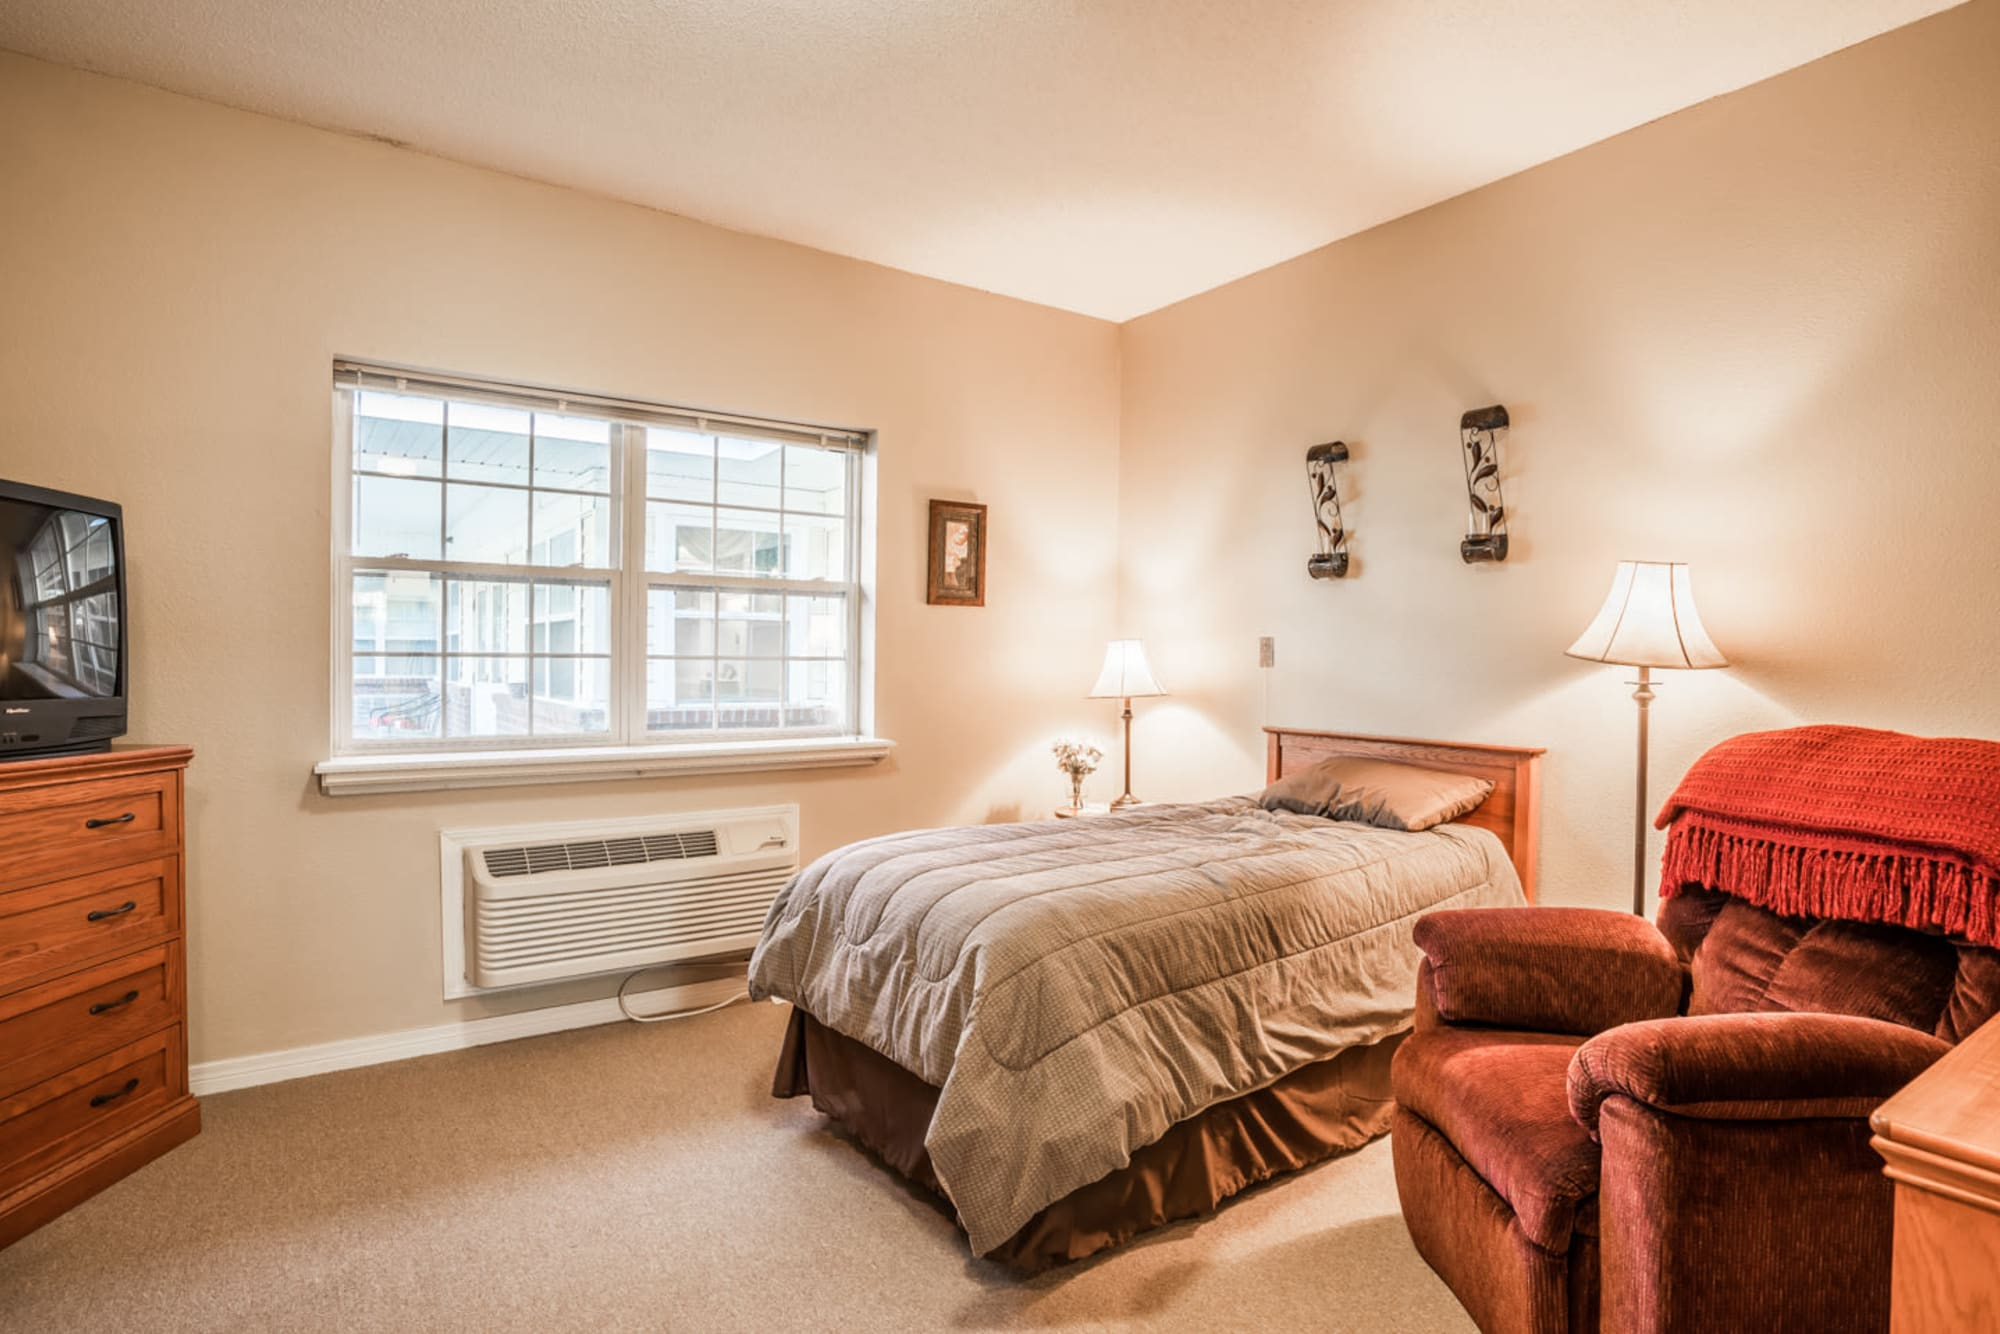 Serene bedroom area with cozy bed and armchair at Saunders House in Wahoo, Nebraska